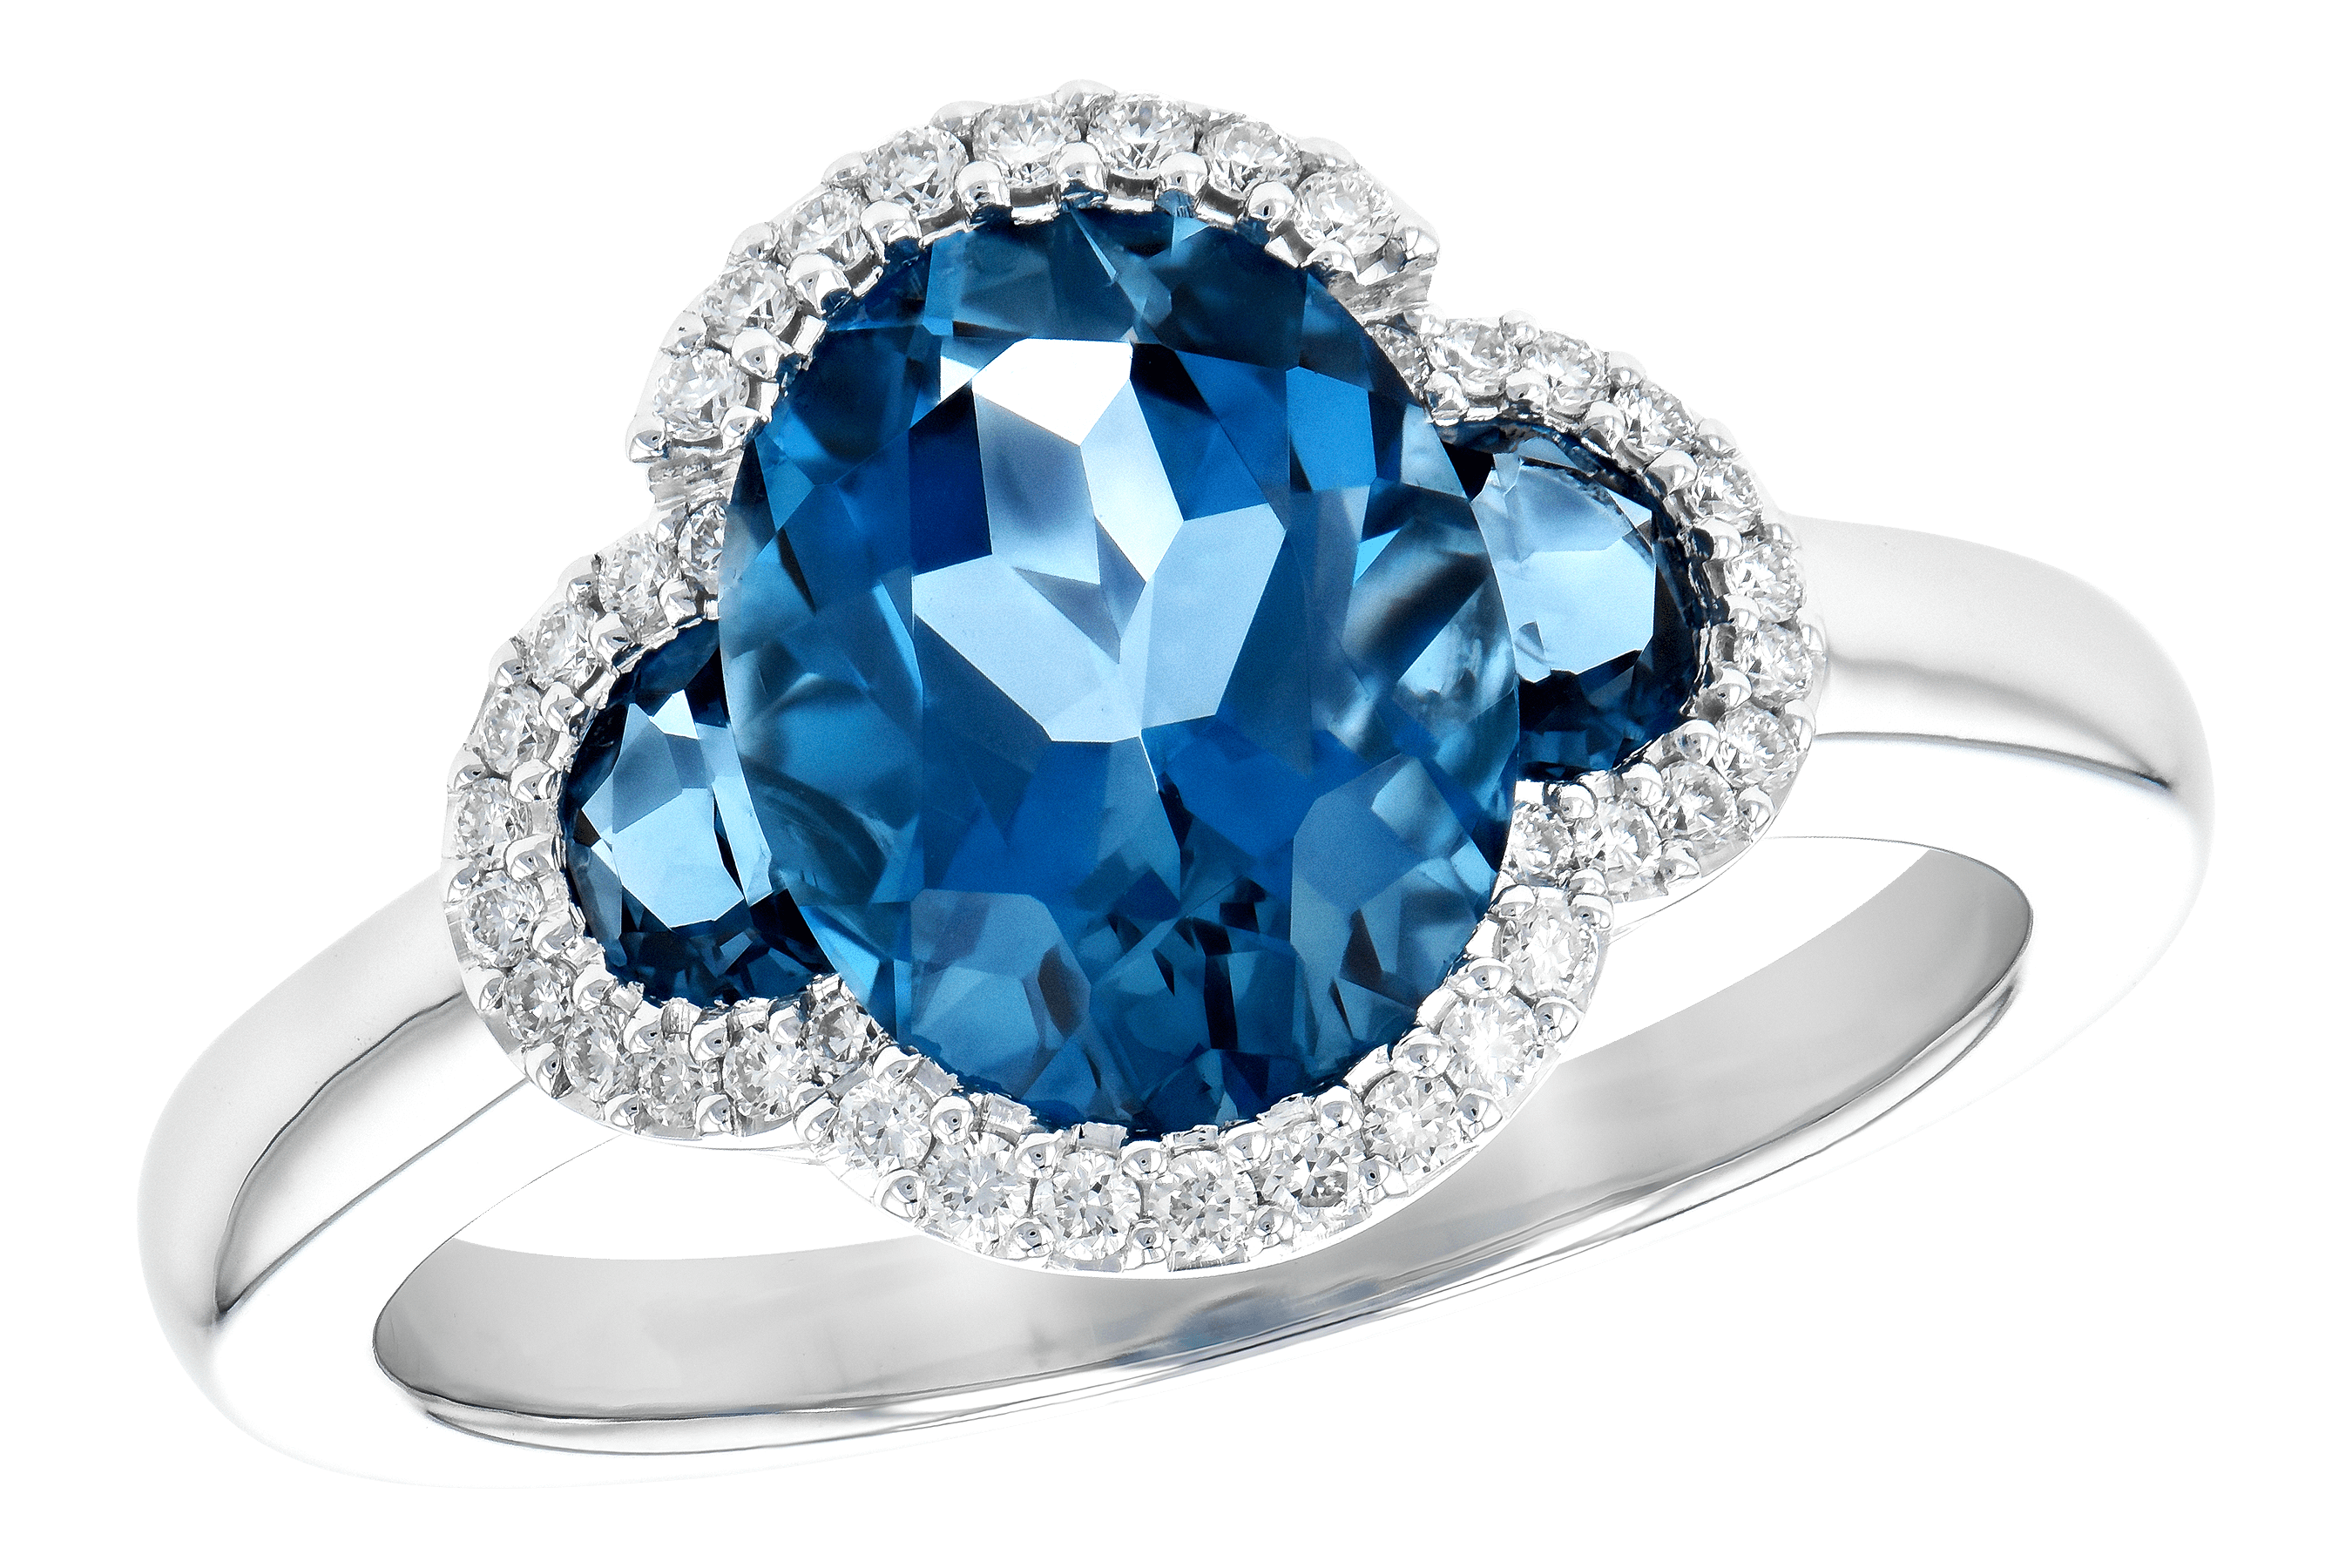 A190-15240: LDS RG 3.04 TW LONDON BLUE TOPAZ 3.20 TGW